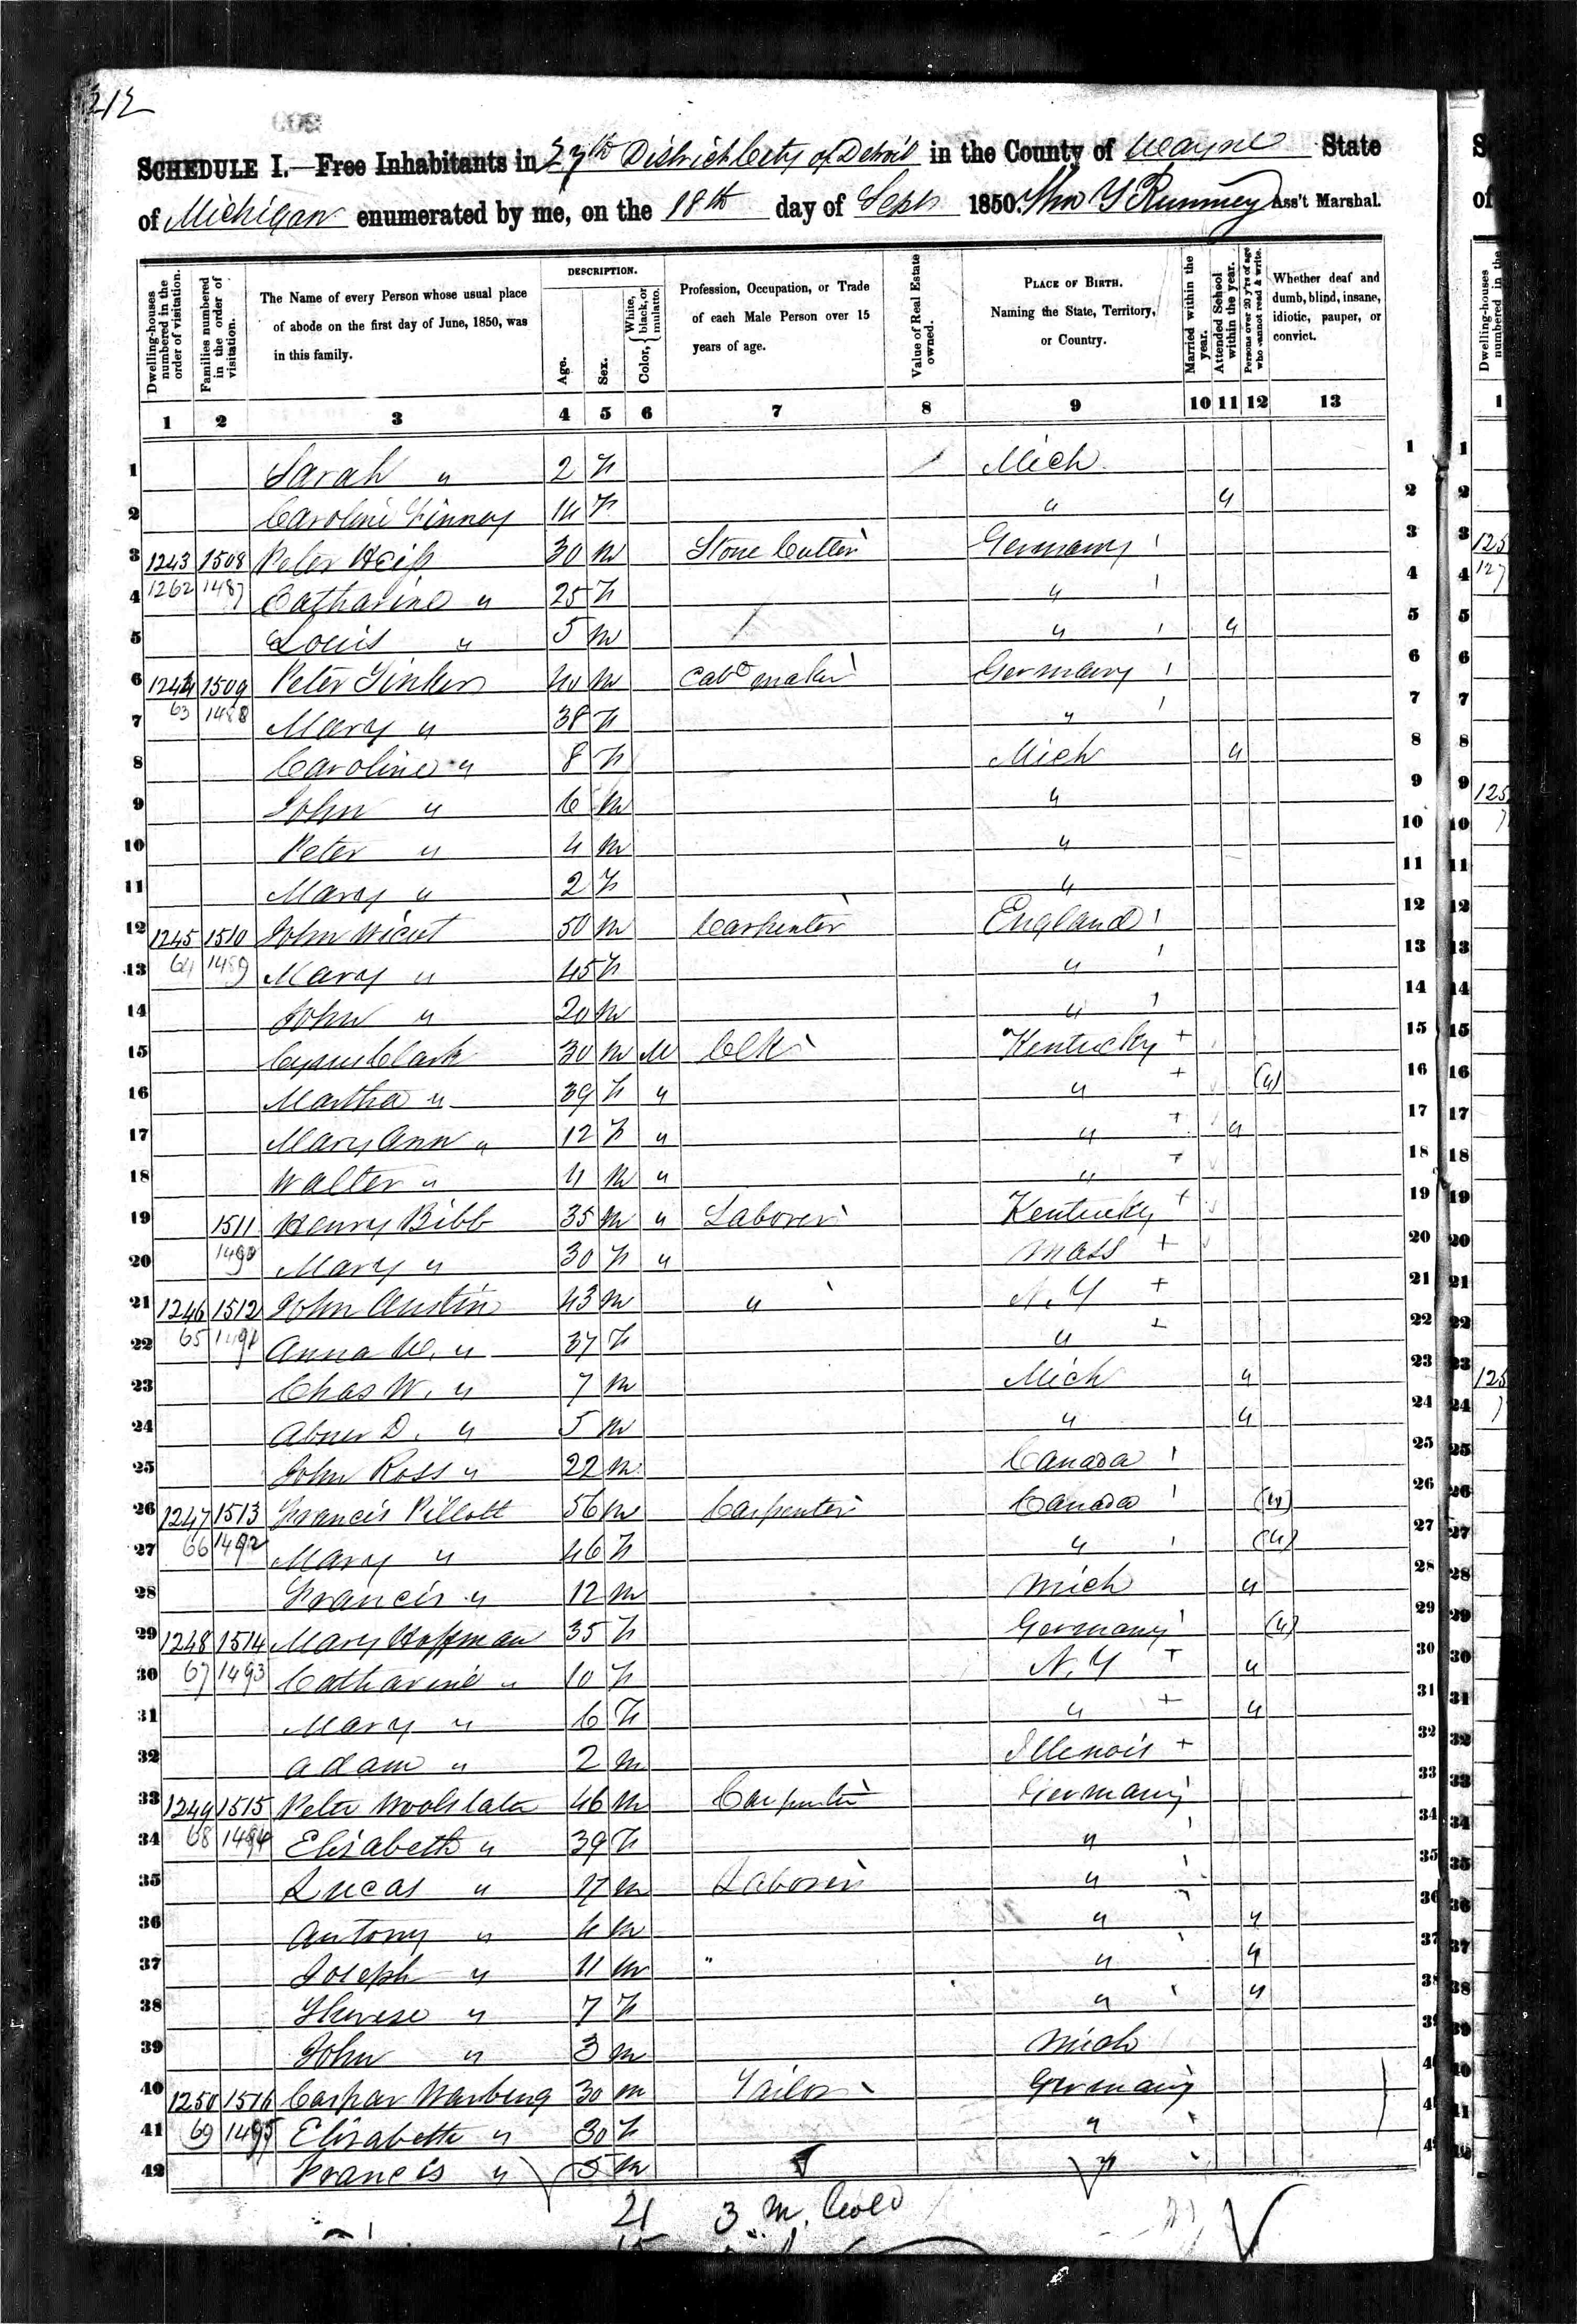 1851 census for Micigan Henry and Mary_0